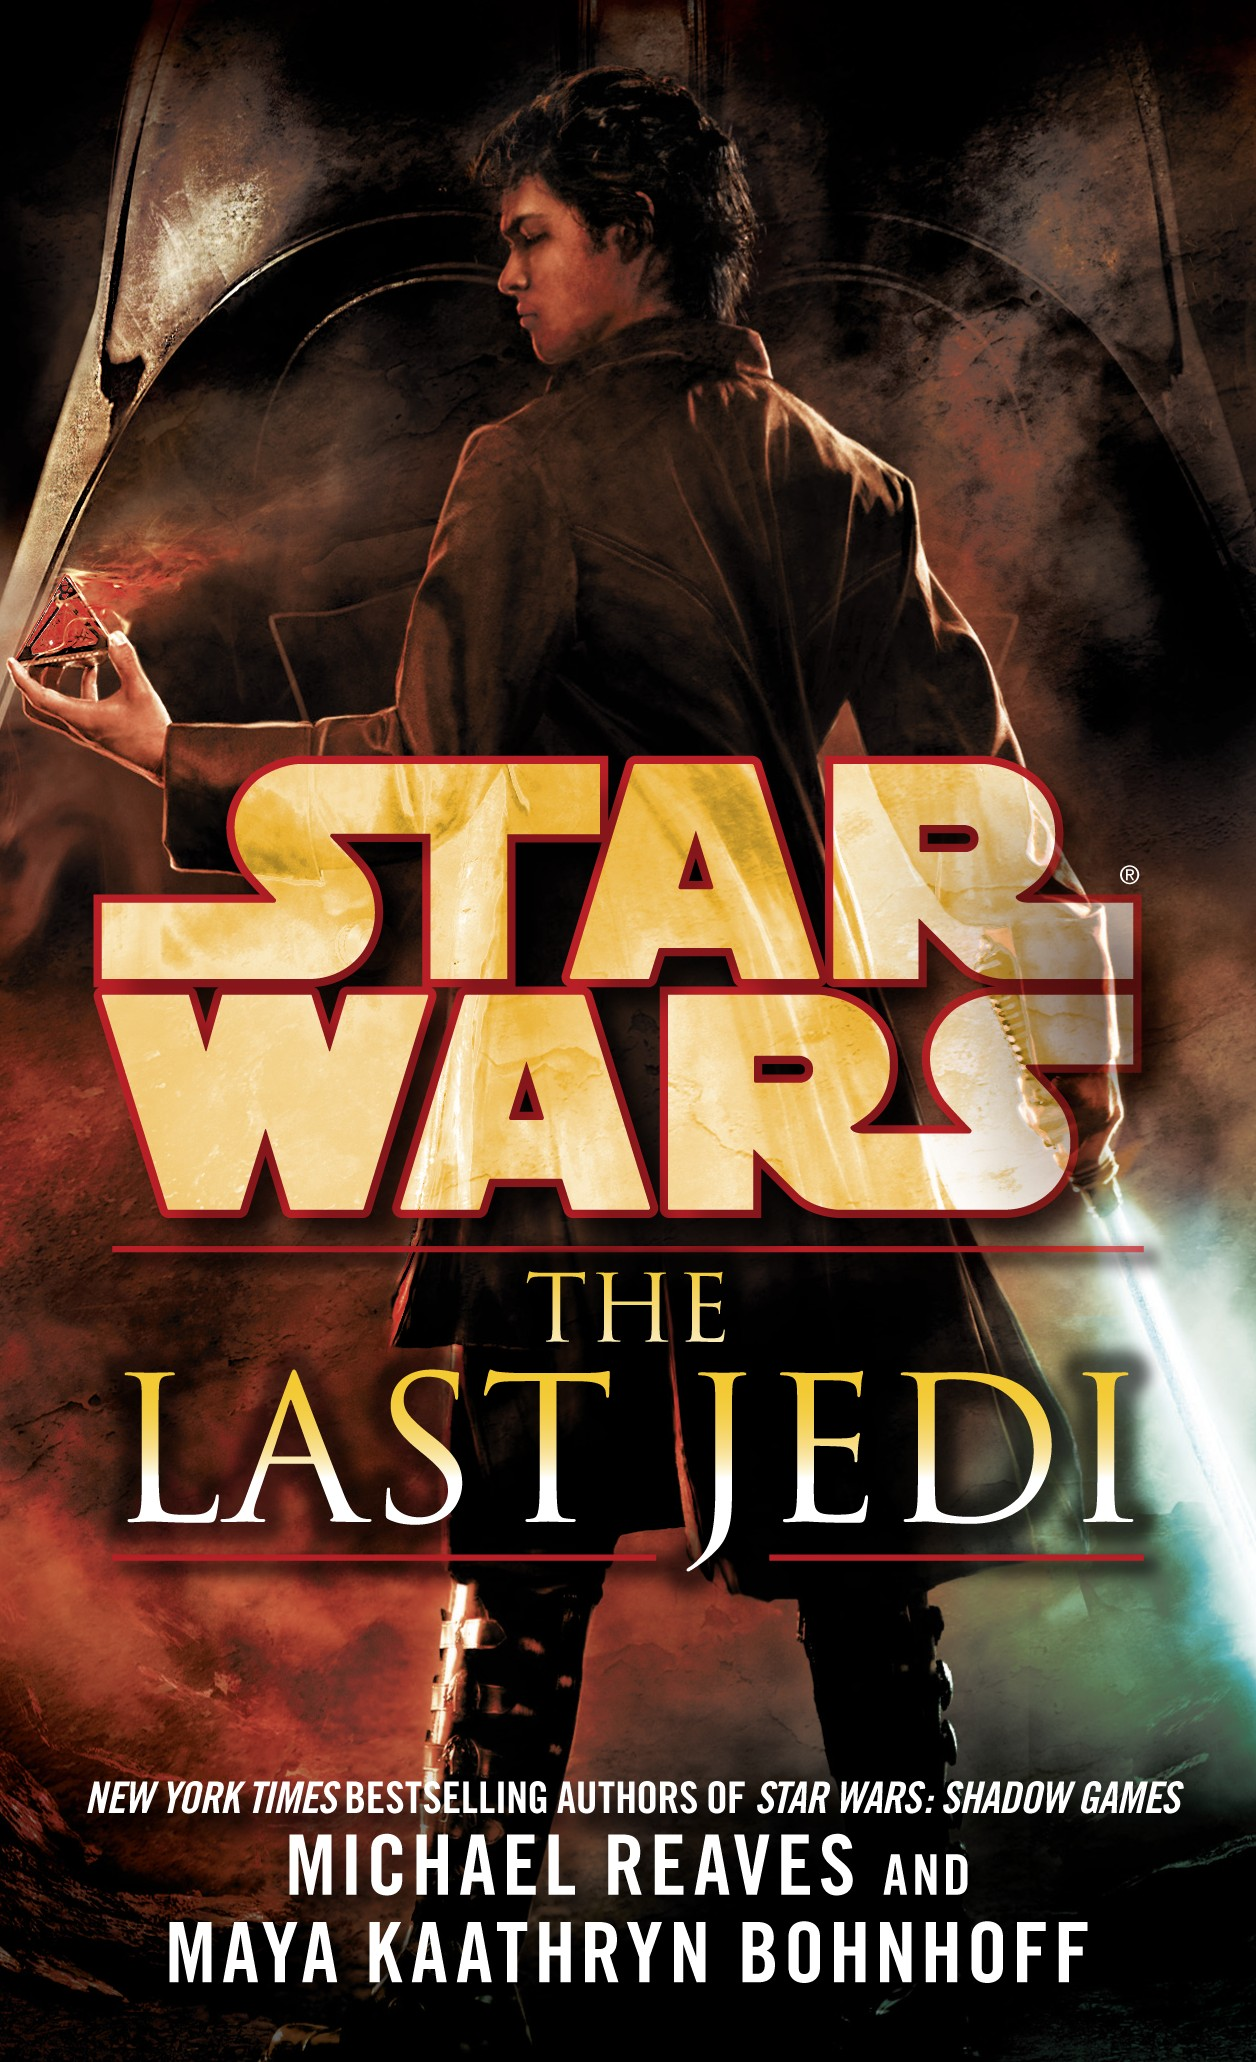 Image result for the last jedi book